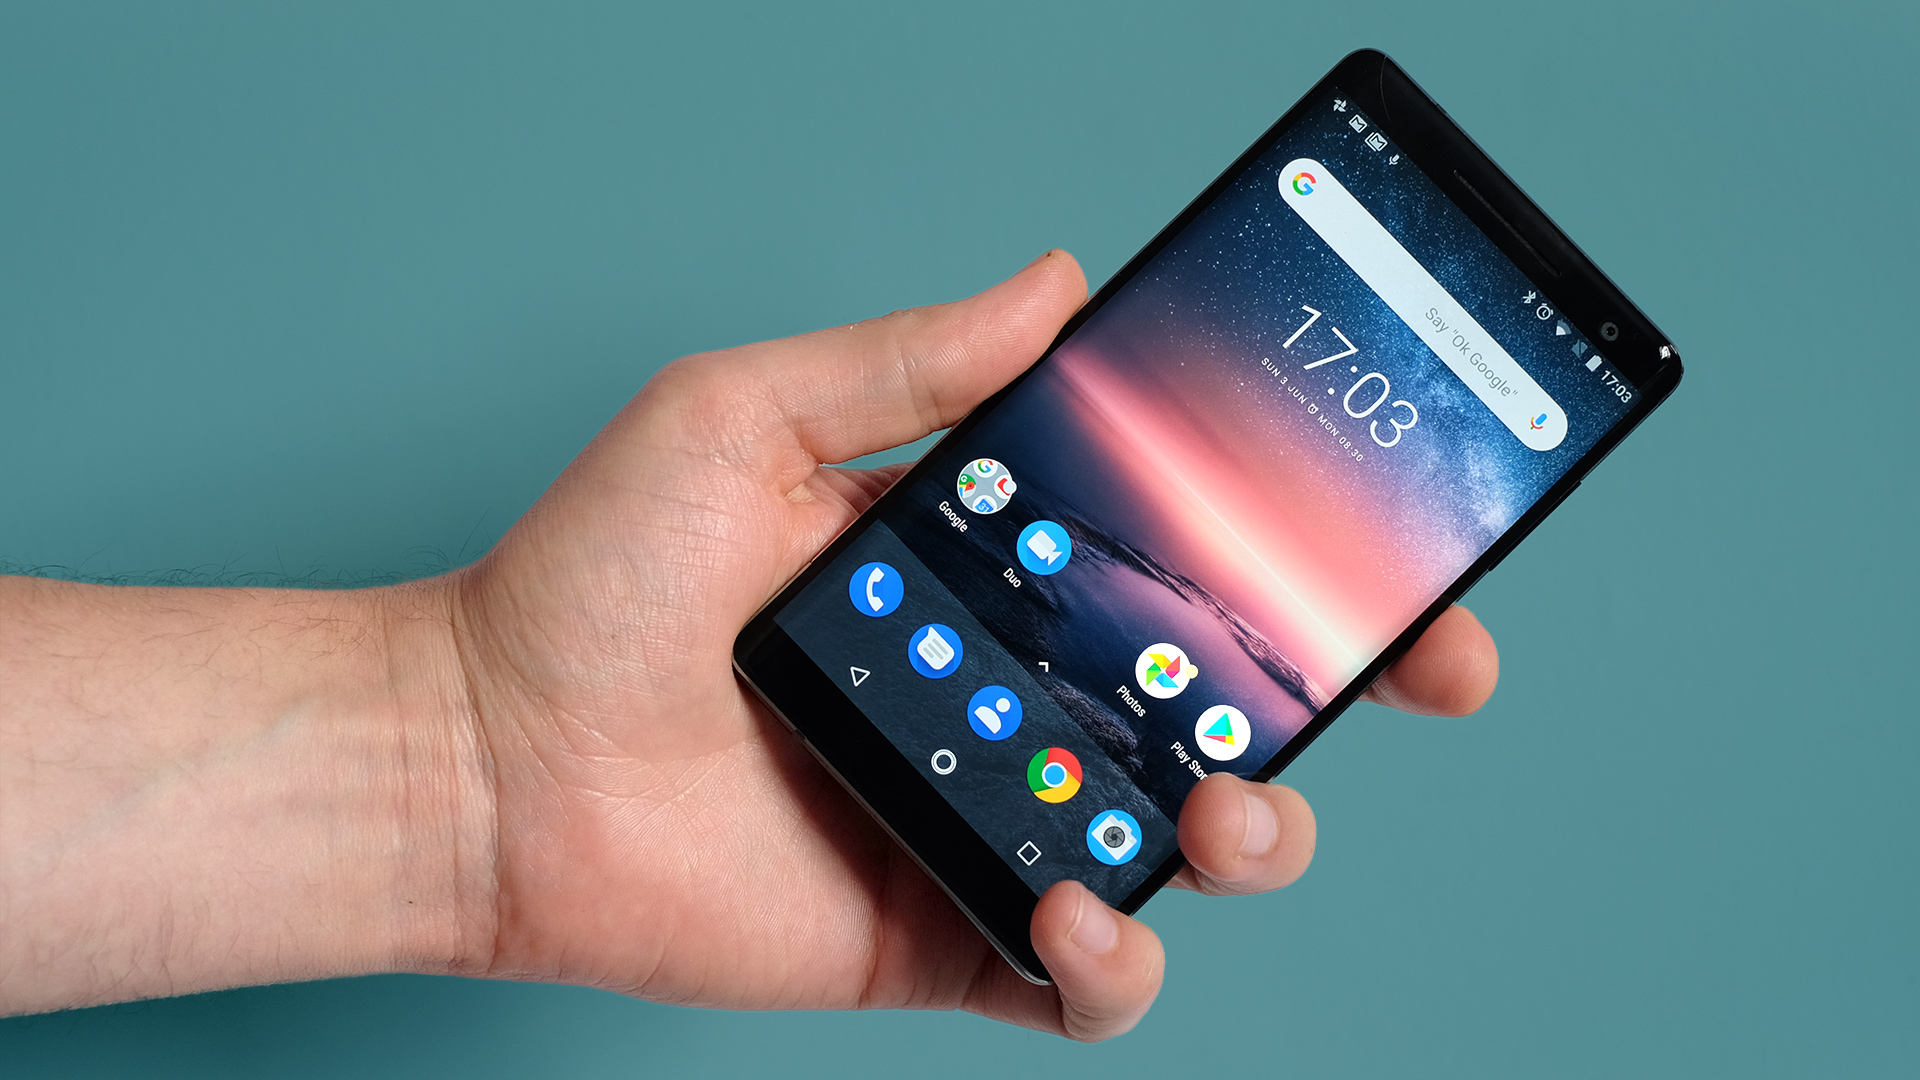 Android Pie set to arrive on all major Nokia phones before mid-2019